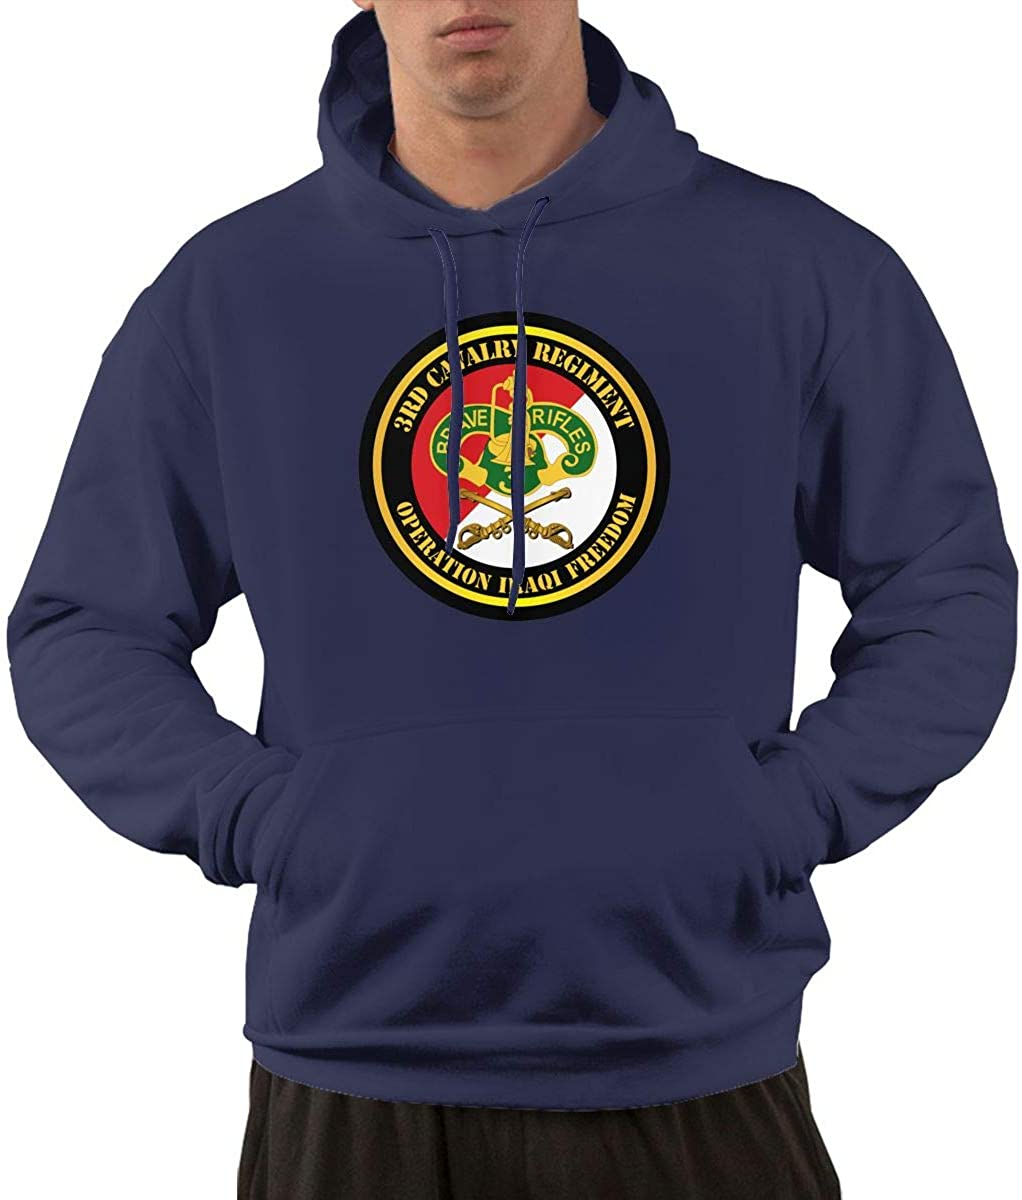 434th Field Artillery Brigade W DUI Us Army Childrens Long Sleeve T-Shirt Boys Cotton Tee Tops